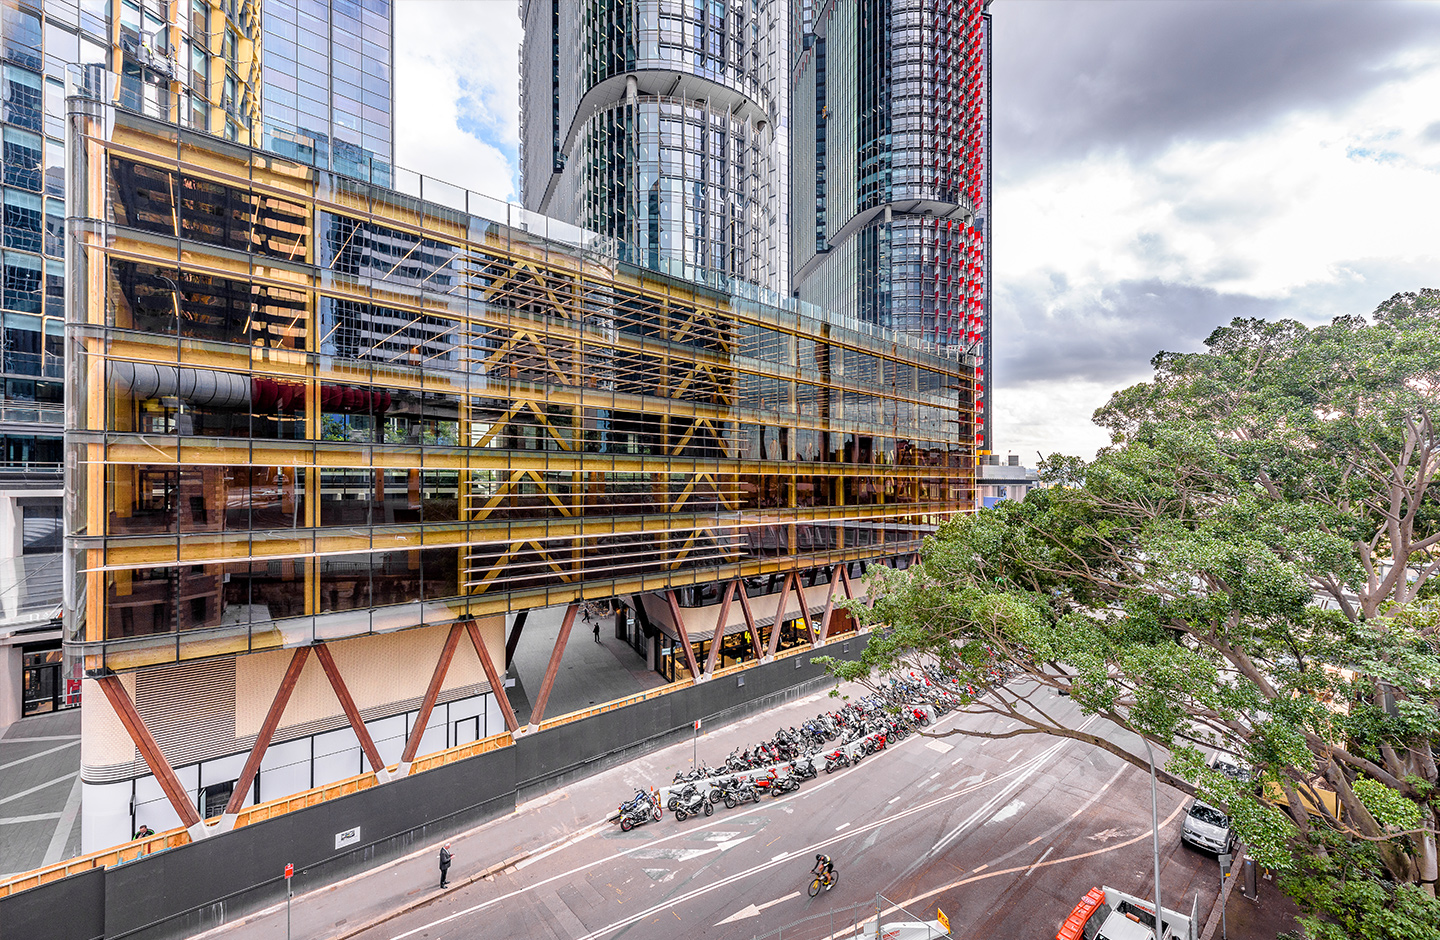 Projects like Lendlease's International House in Sydney prove CLT's environmentally-friendly potential.